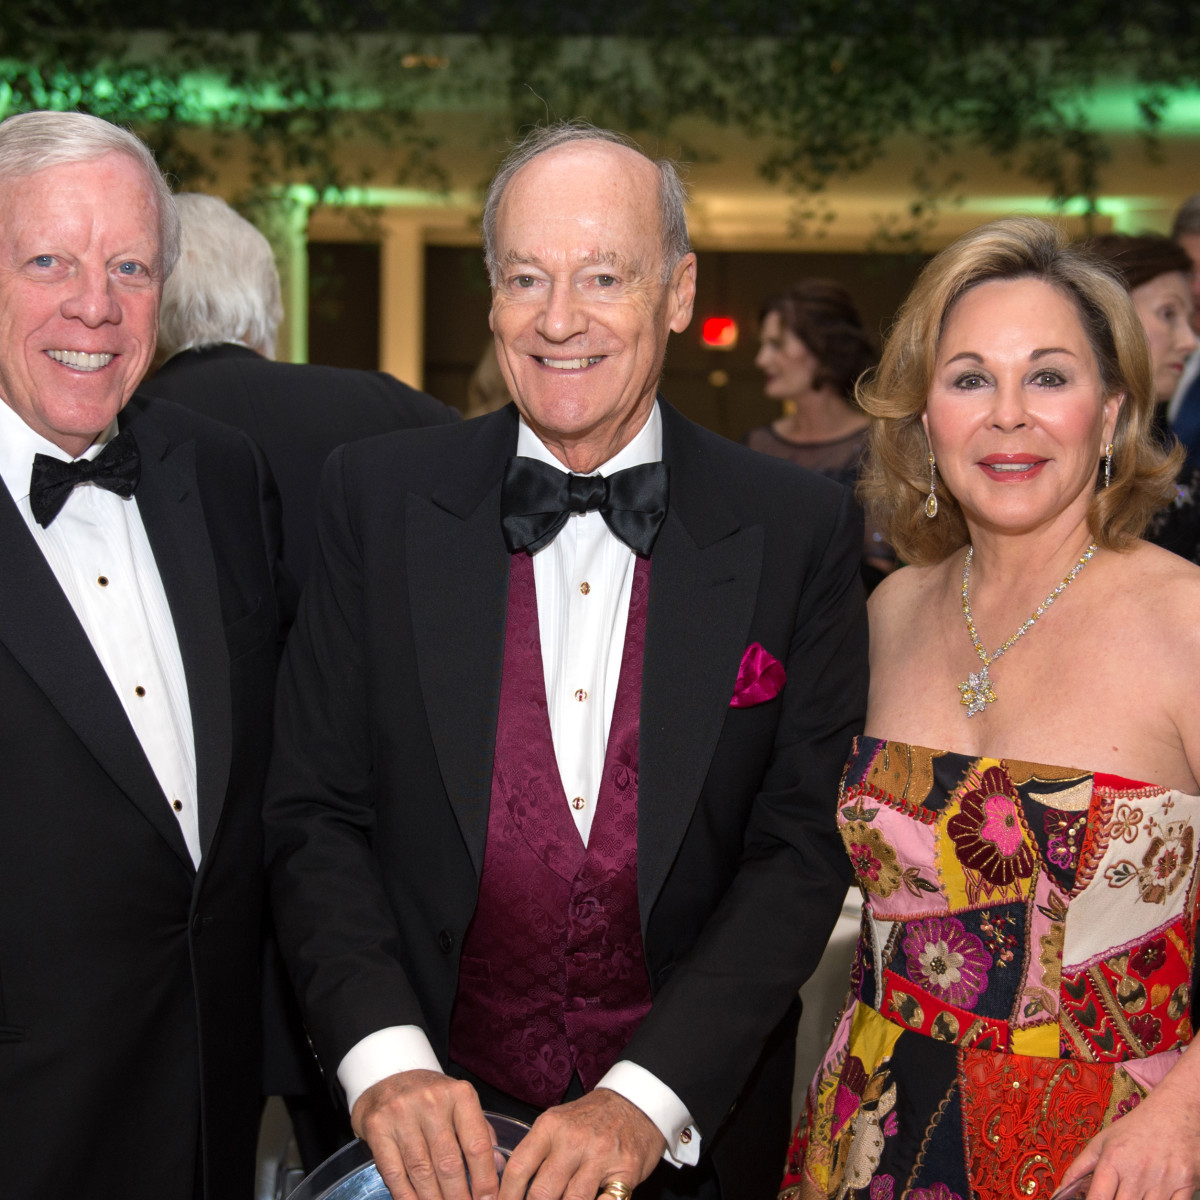 Houston, MFAH Art of the Islamic Worlds Gala, November 2017, Rich Kinder, Prince Amyn, Nancy Kinder